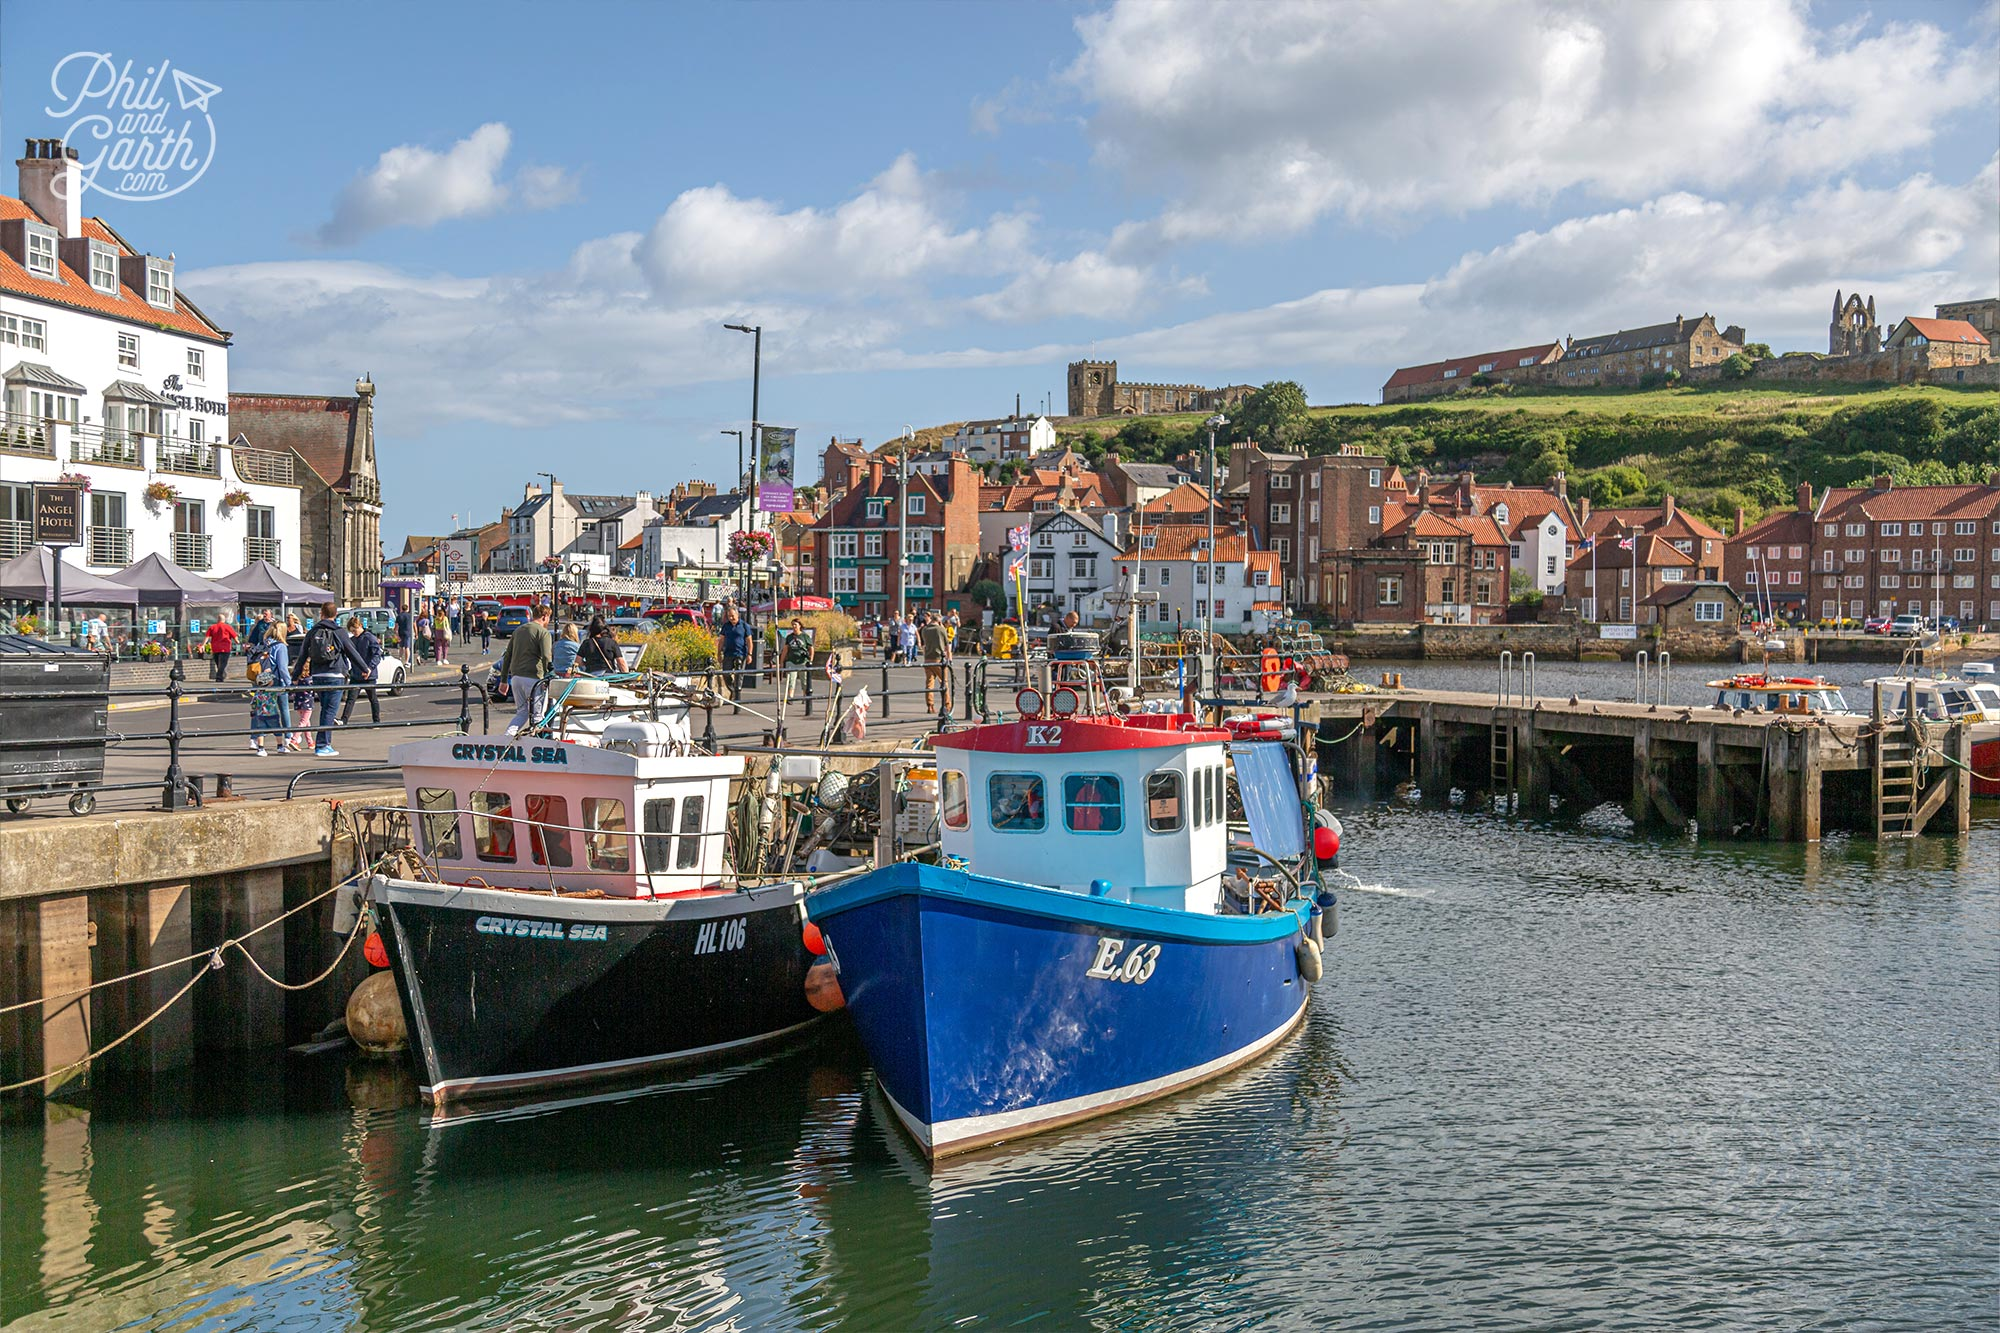 The fishing industry has been a way of life for over 1,000 years in Whitby